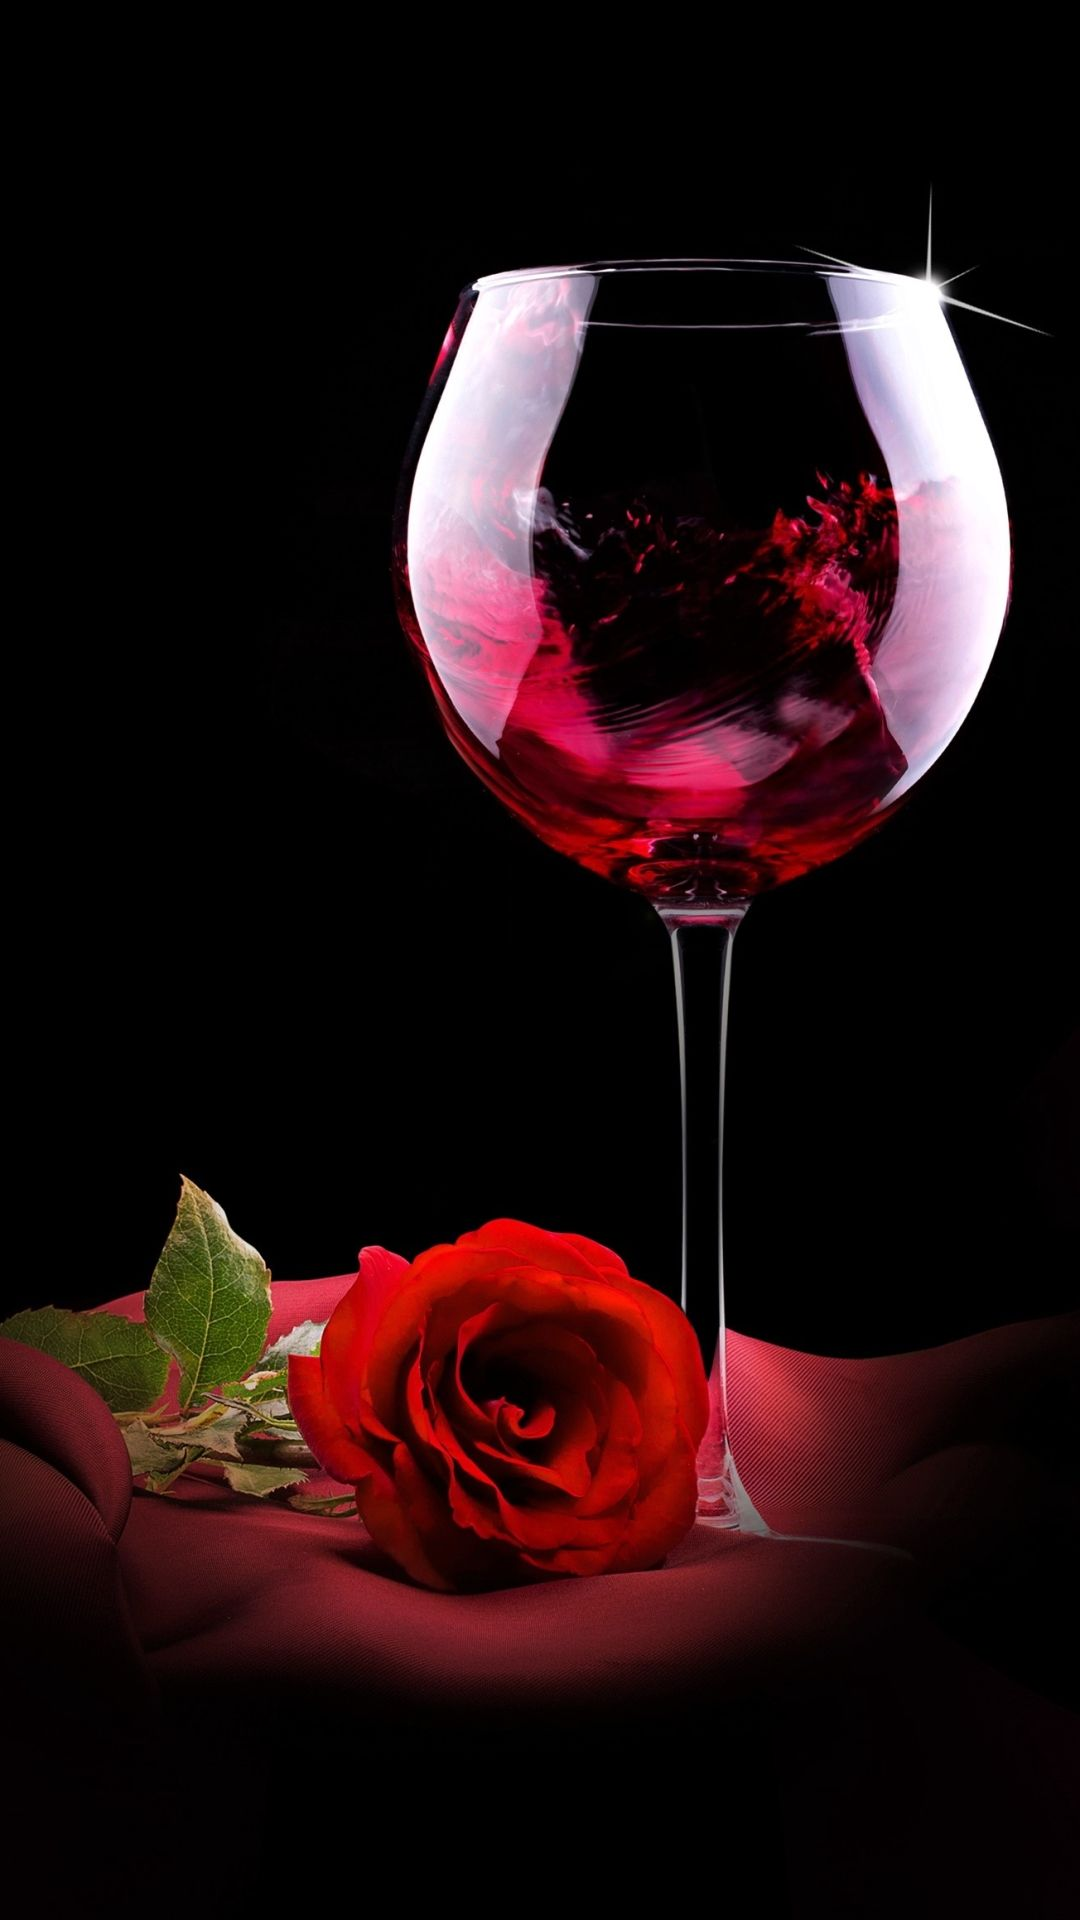 Photography Still Life 1080x1920 Mobile Wallpaper Wine Wallpaper Red Wine Wine